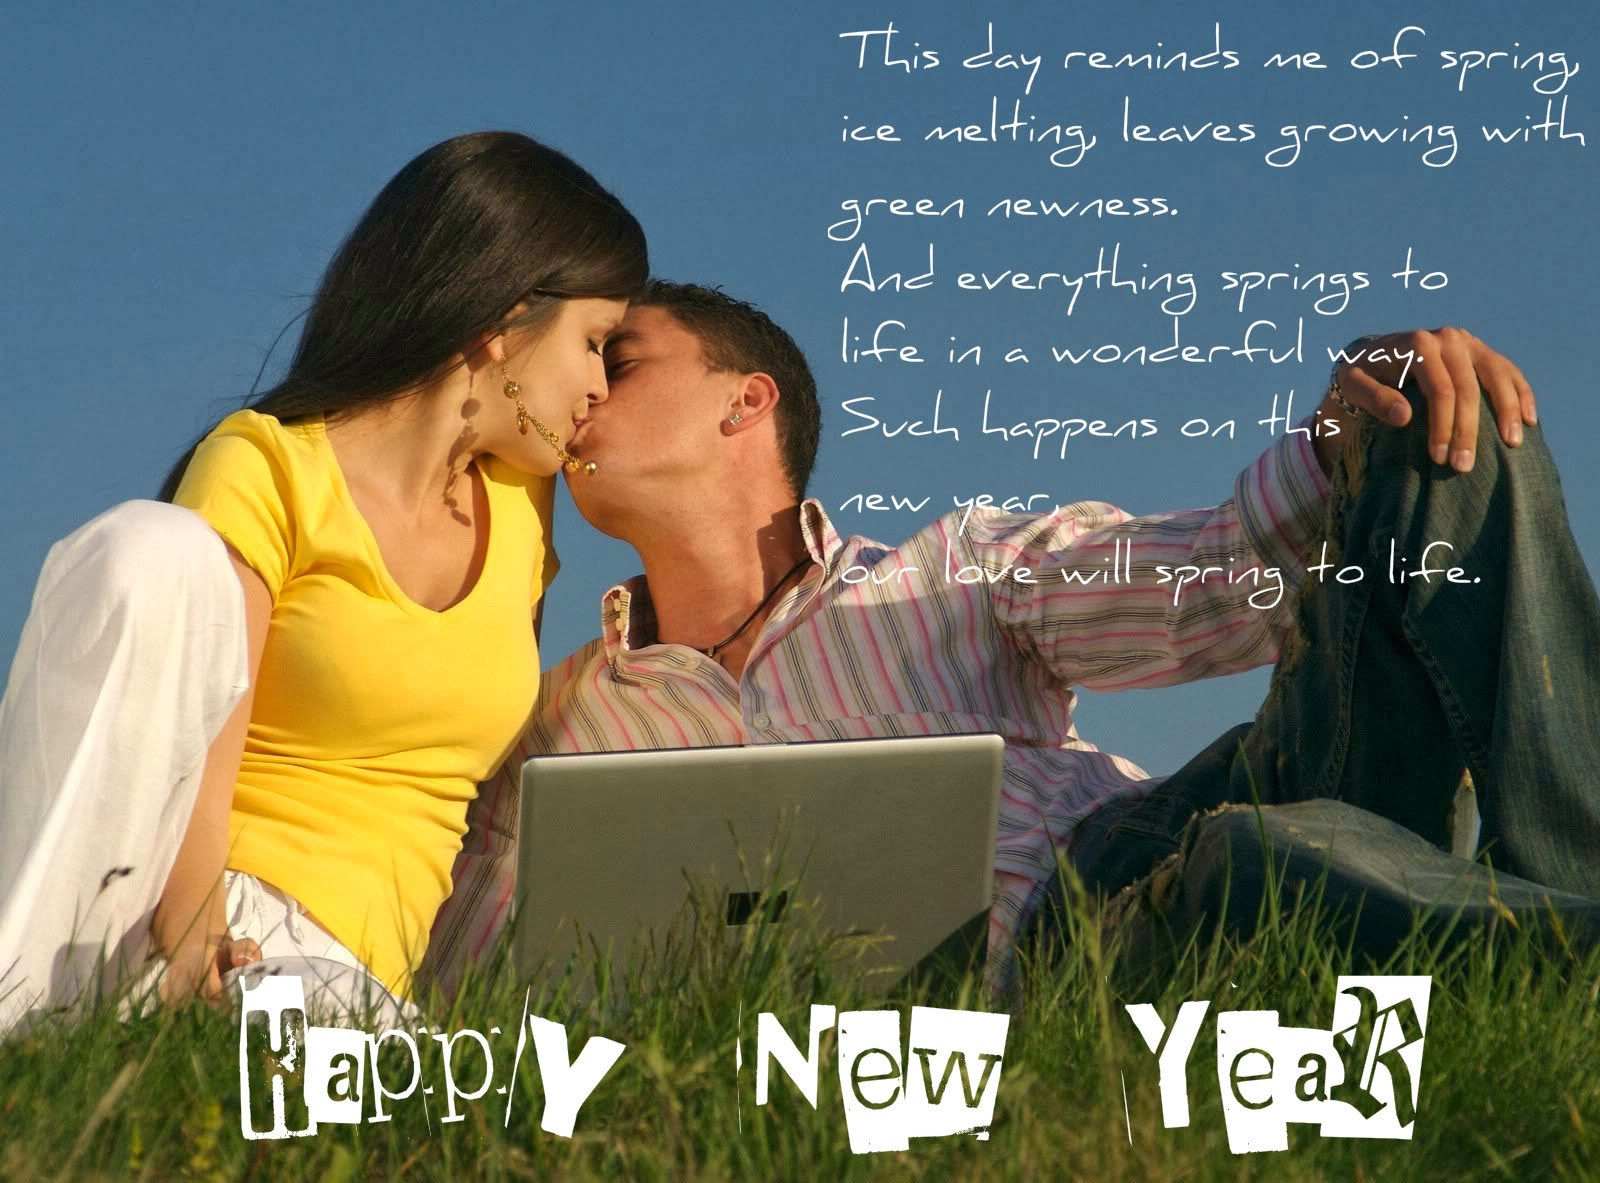 Happy new year quotes for girlfriend pelfusion this day reminds me happy new year 2015 m4hsunfo